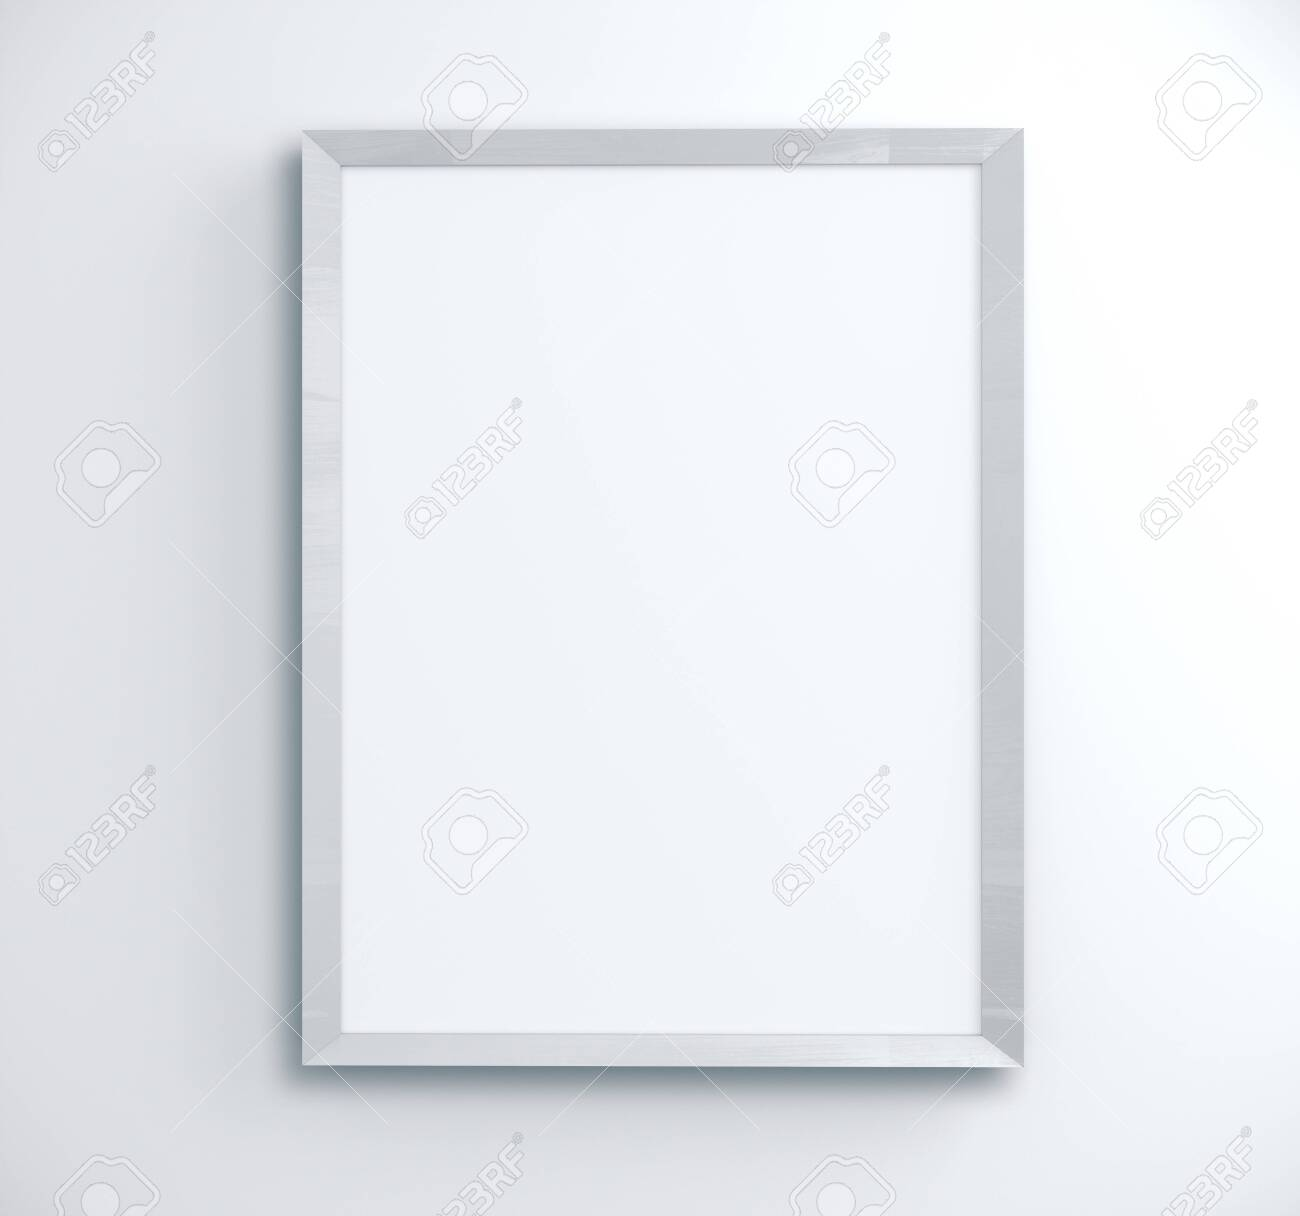 Blank poster on concrete wall. Gallery, art, exhibit and museum concept. Mock up, 3D Rendering - 139675572